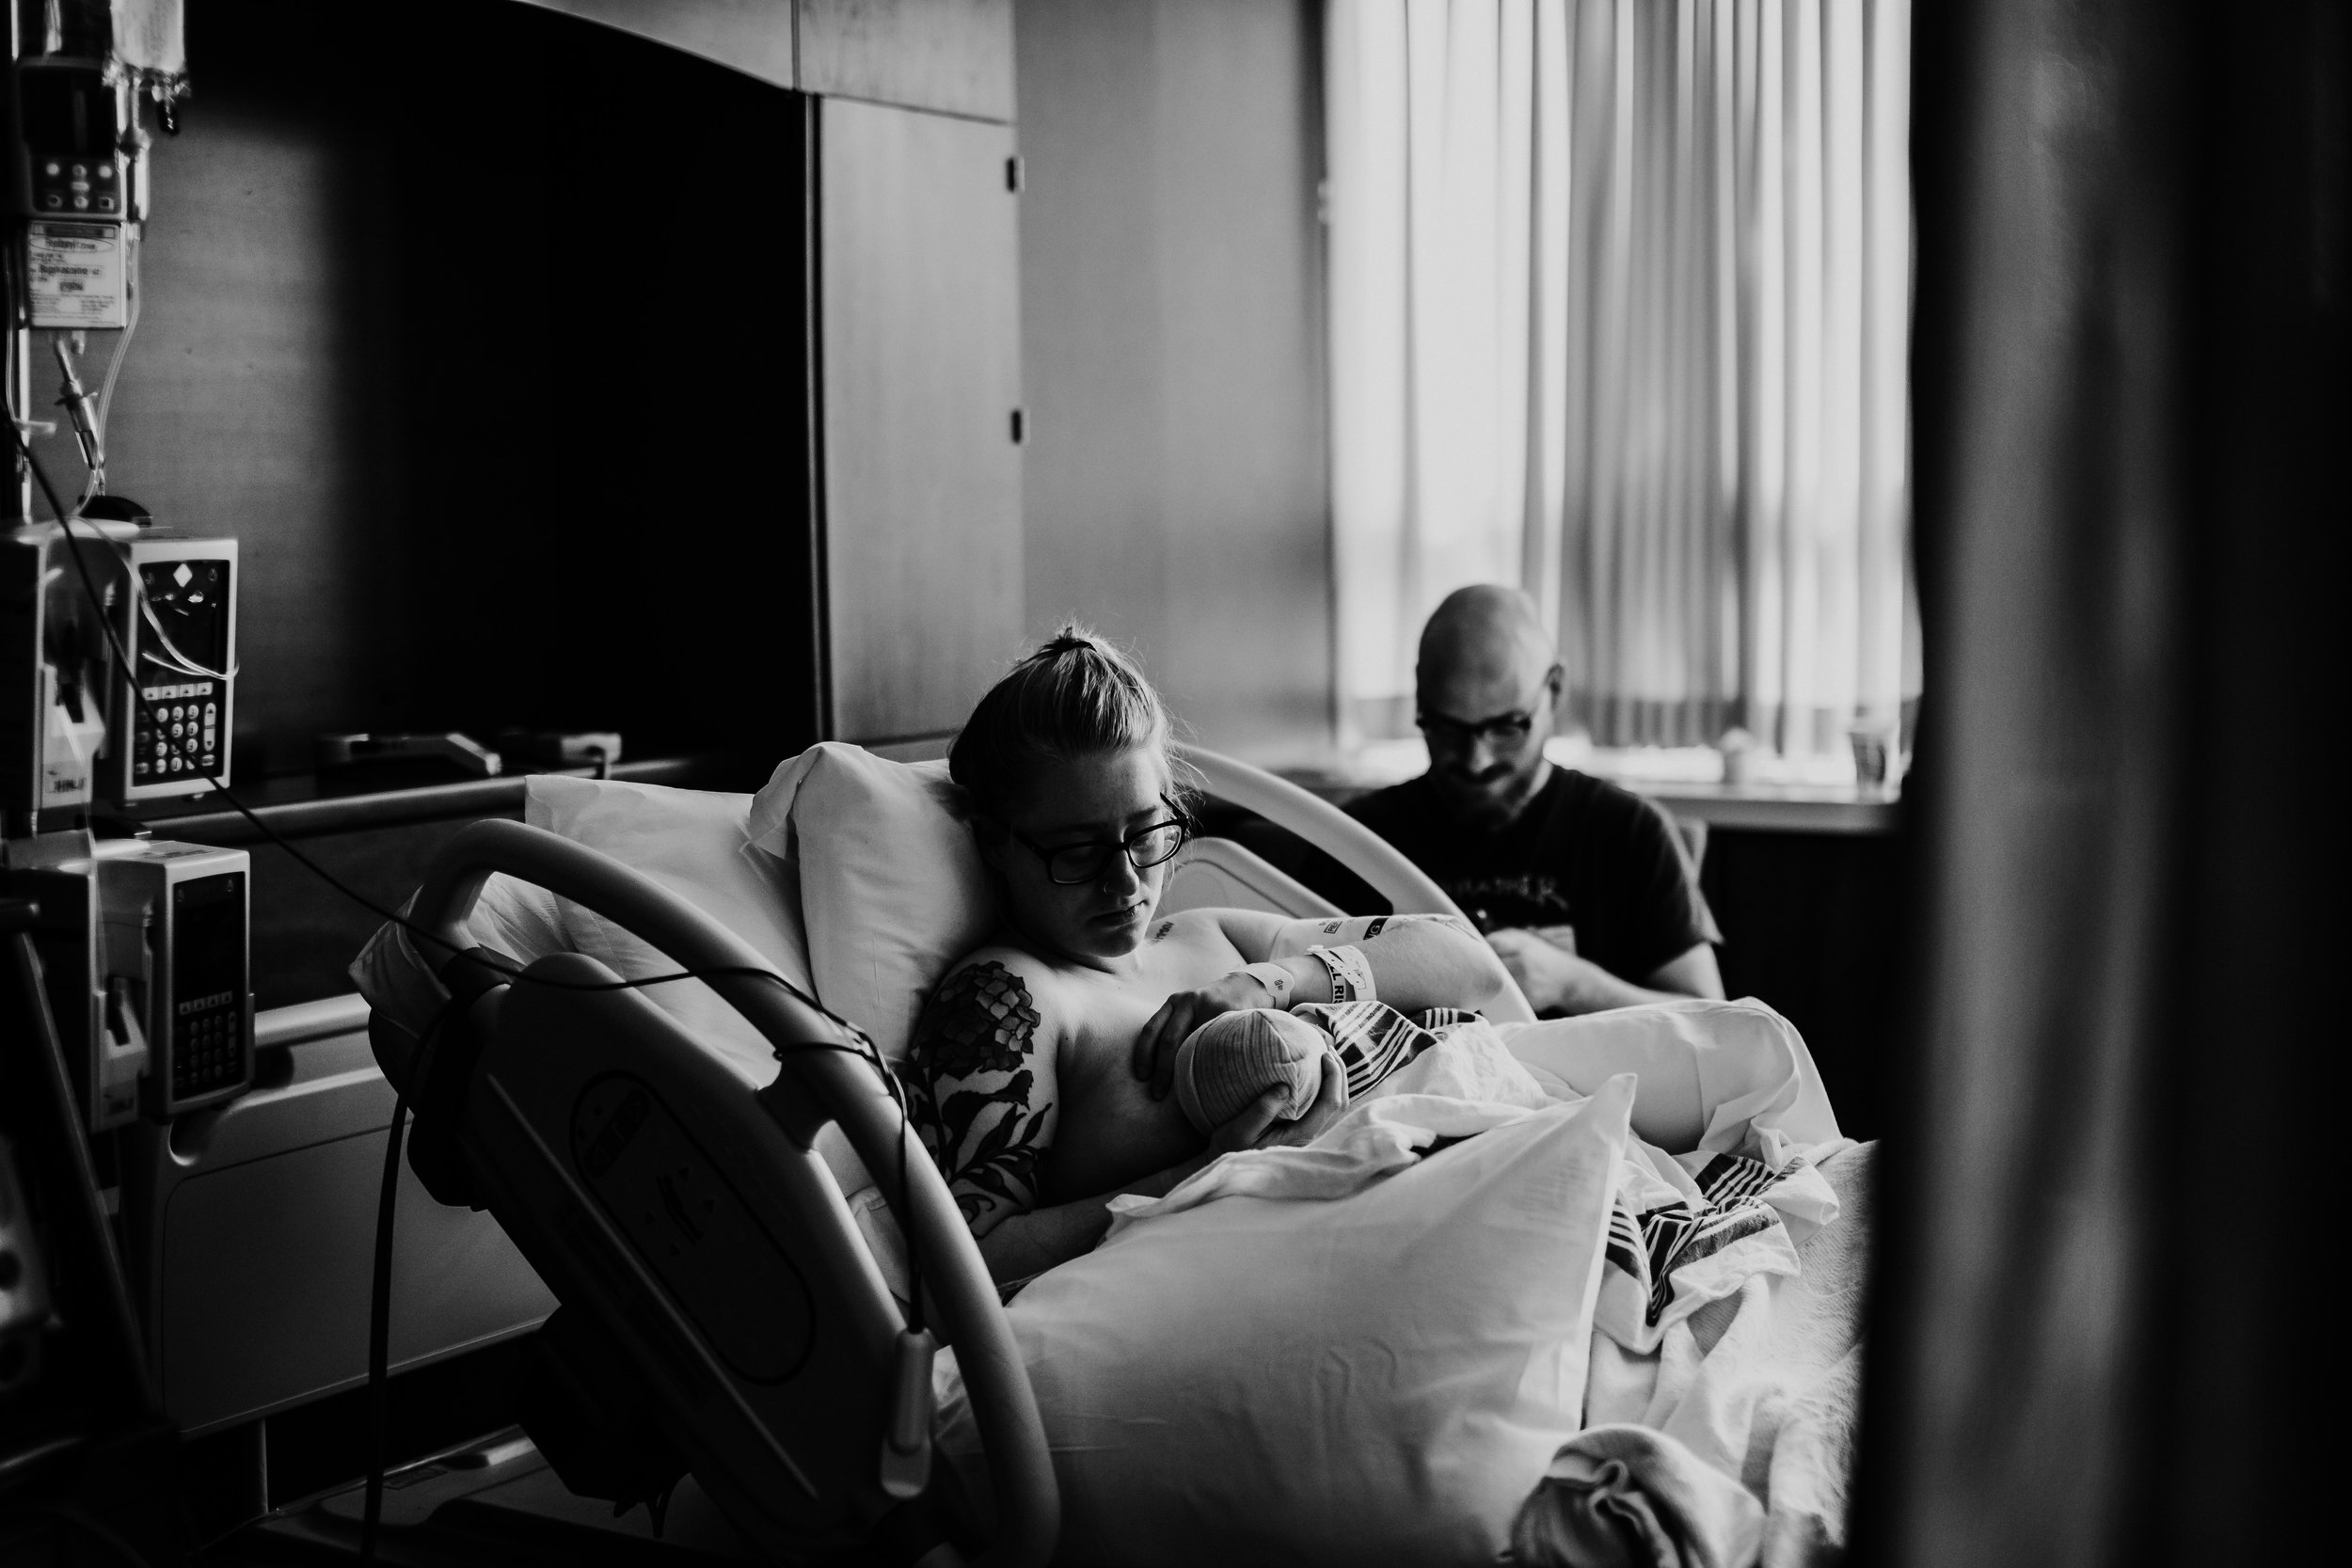 mom and baby work through breast feeding there in the hospital room while Dady texts in excitement the news of their baby | Hospital birth story Duke Regional Medical Center | North Carolina birth photography | Titus L Birth Story | Hanna Hill Photography | Raleigh Durham Birth and Family Photographer